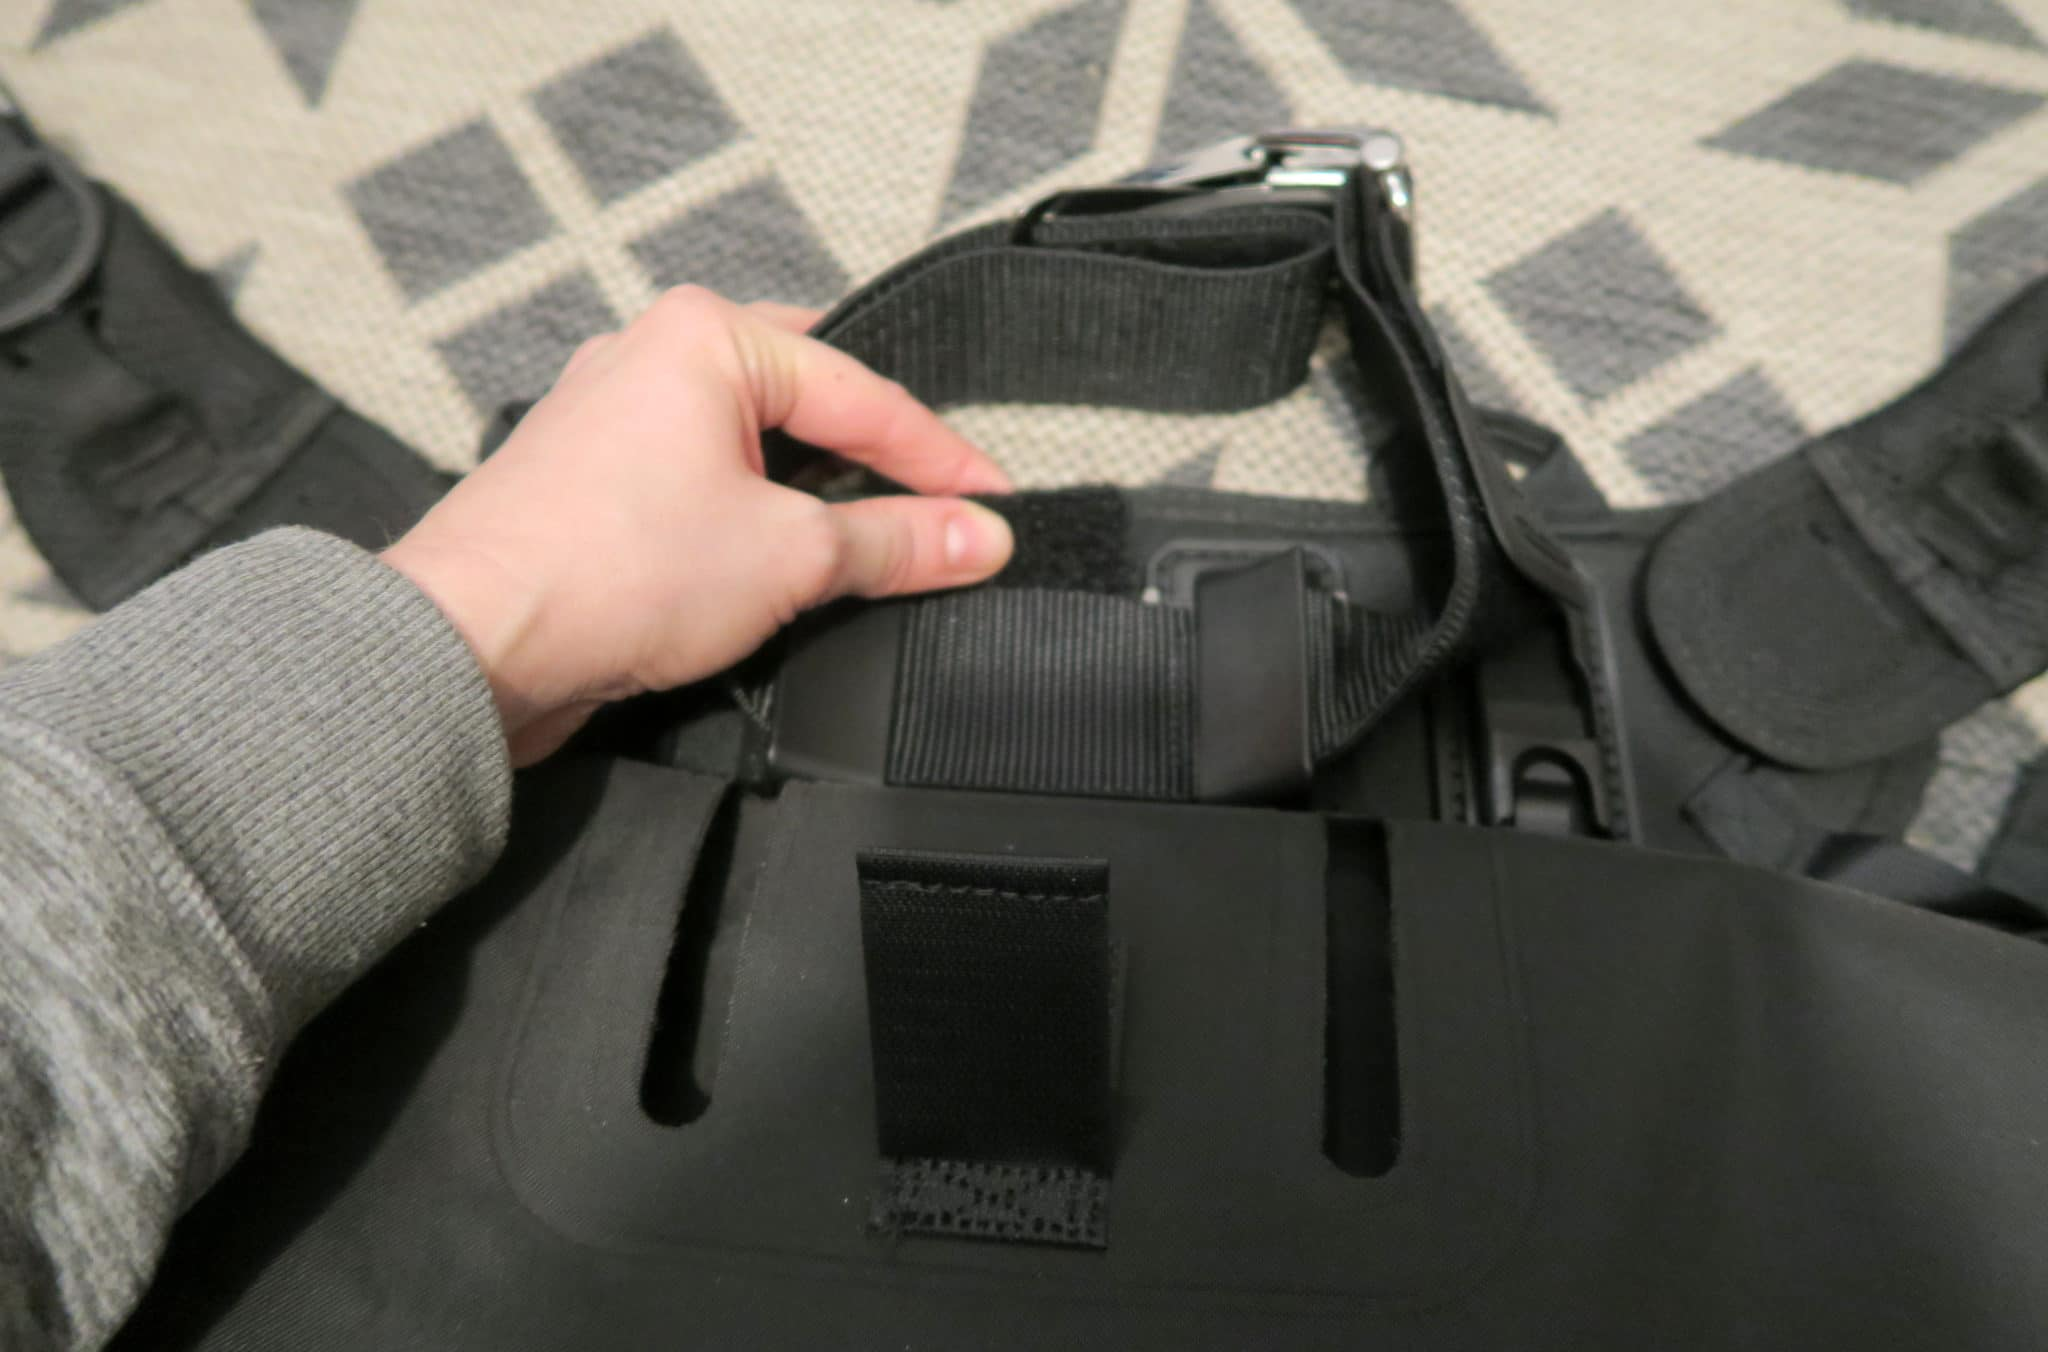 Outlaw BCD assembly